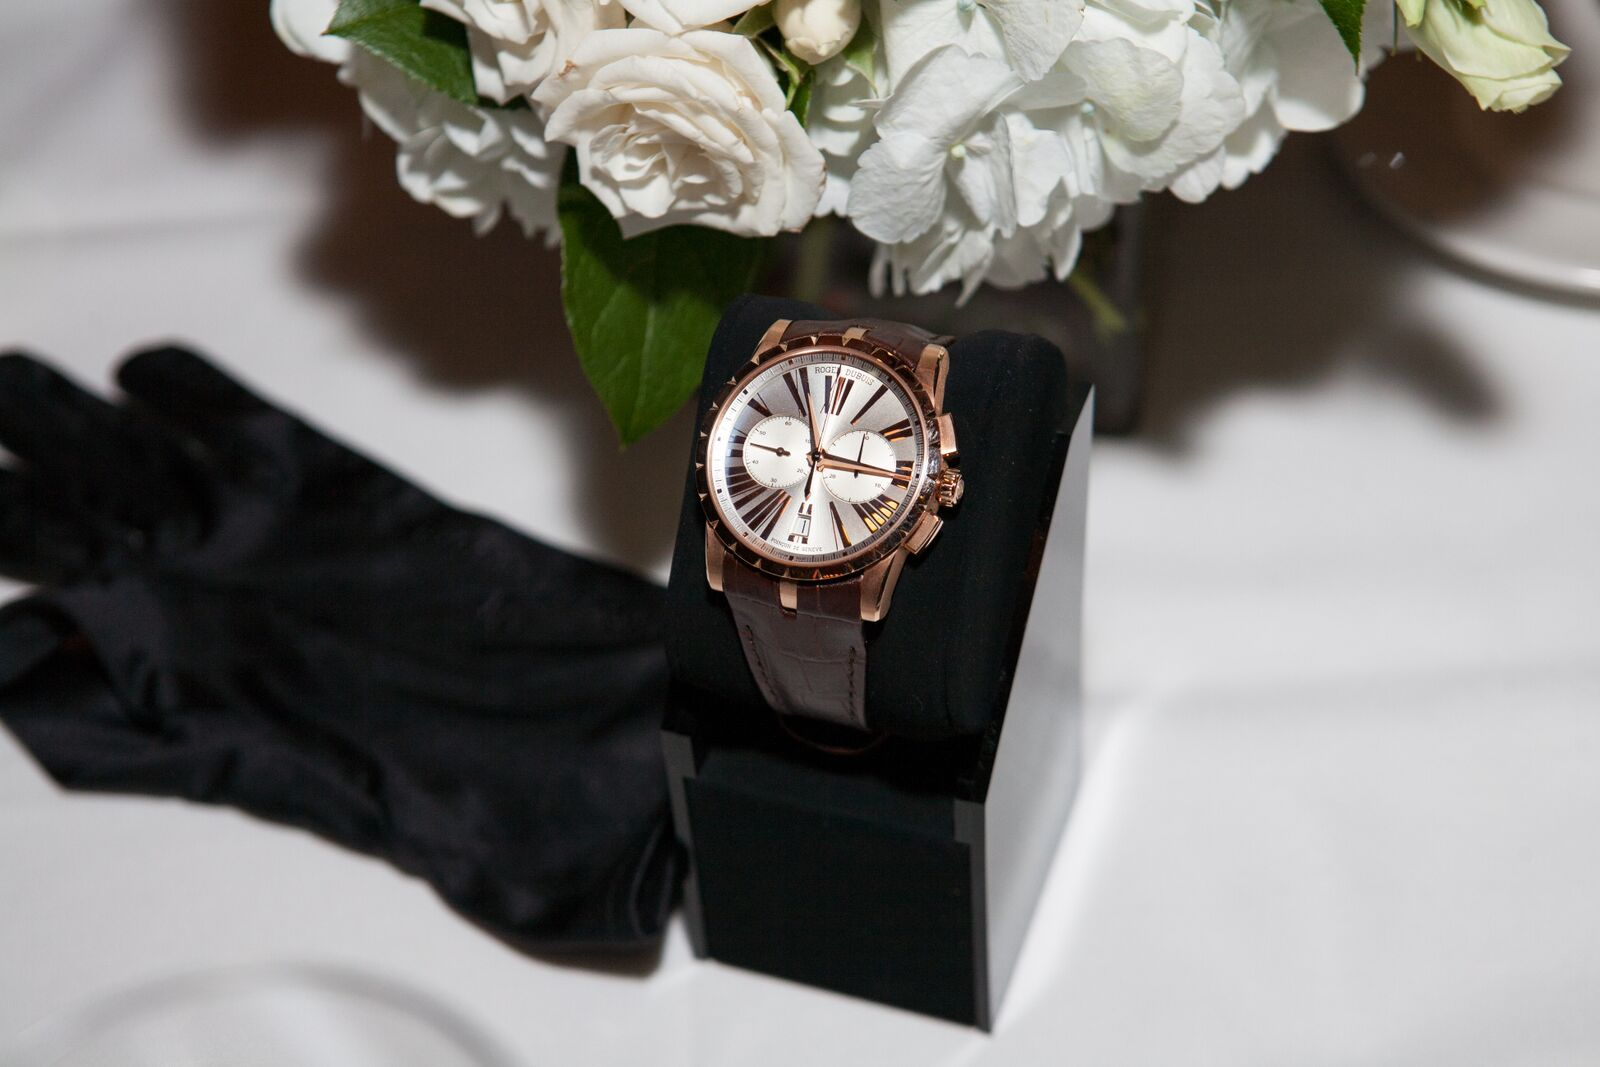 roger-dubuis-watch-chicago-76.jpg